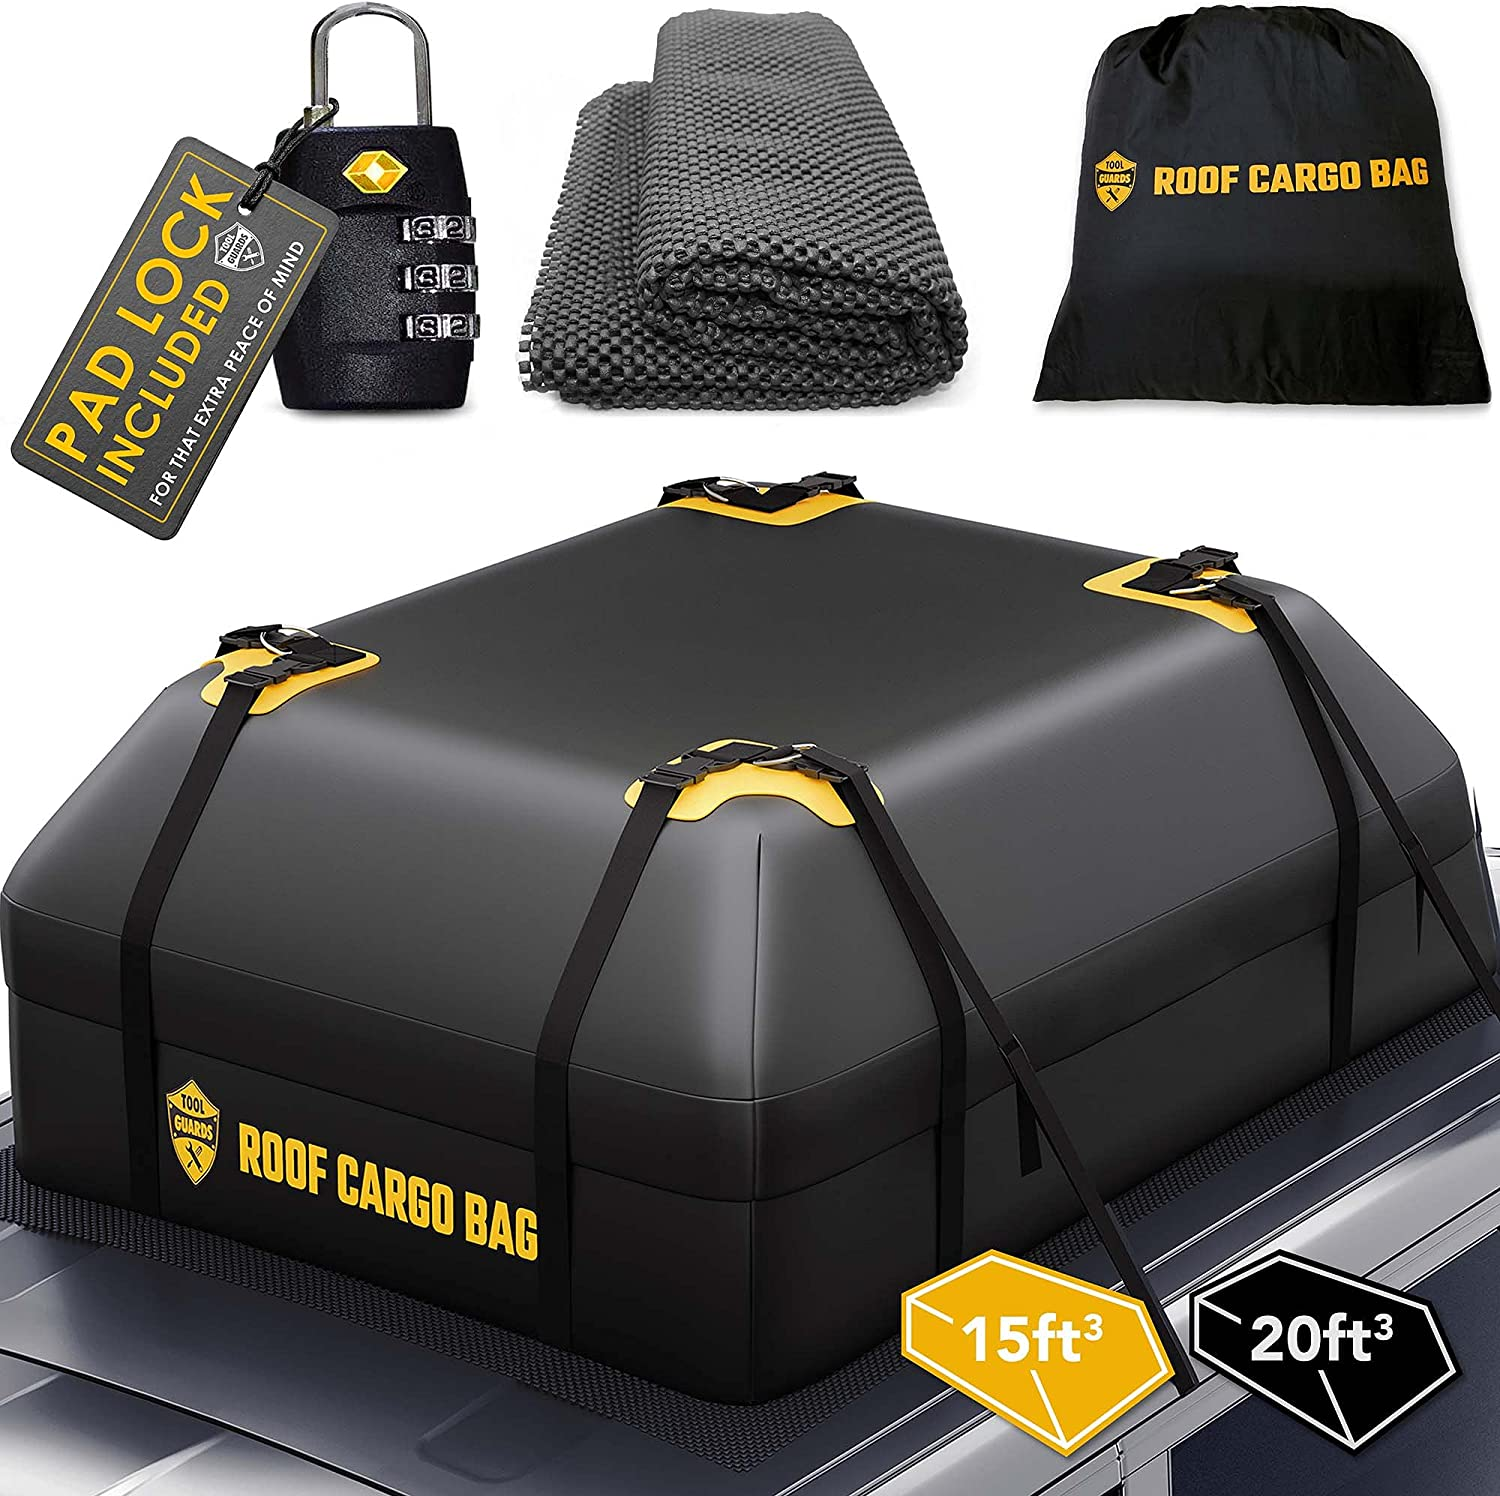 Rooftop Cargo Carrier for Top of Vehicle - Car Top Carrier Roof Bag 15 or 20 Cubic for Cars with or Without Racks : Automotive